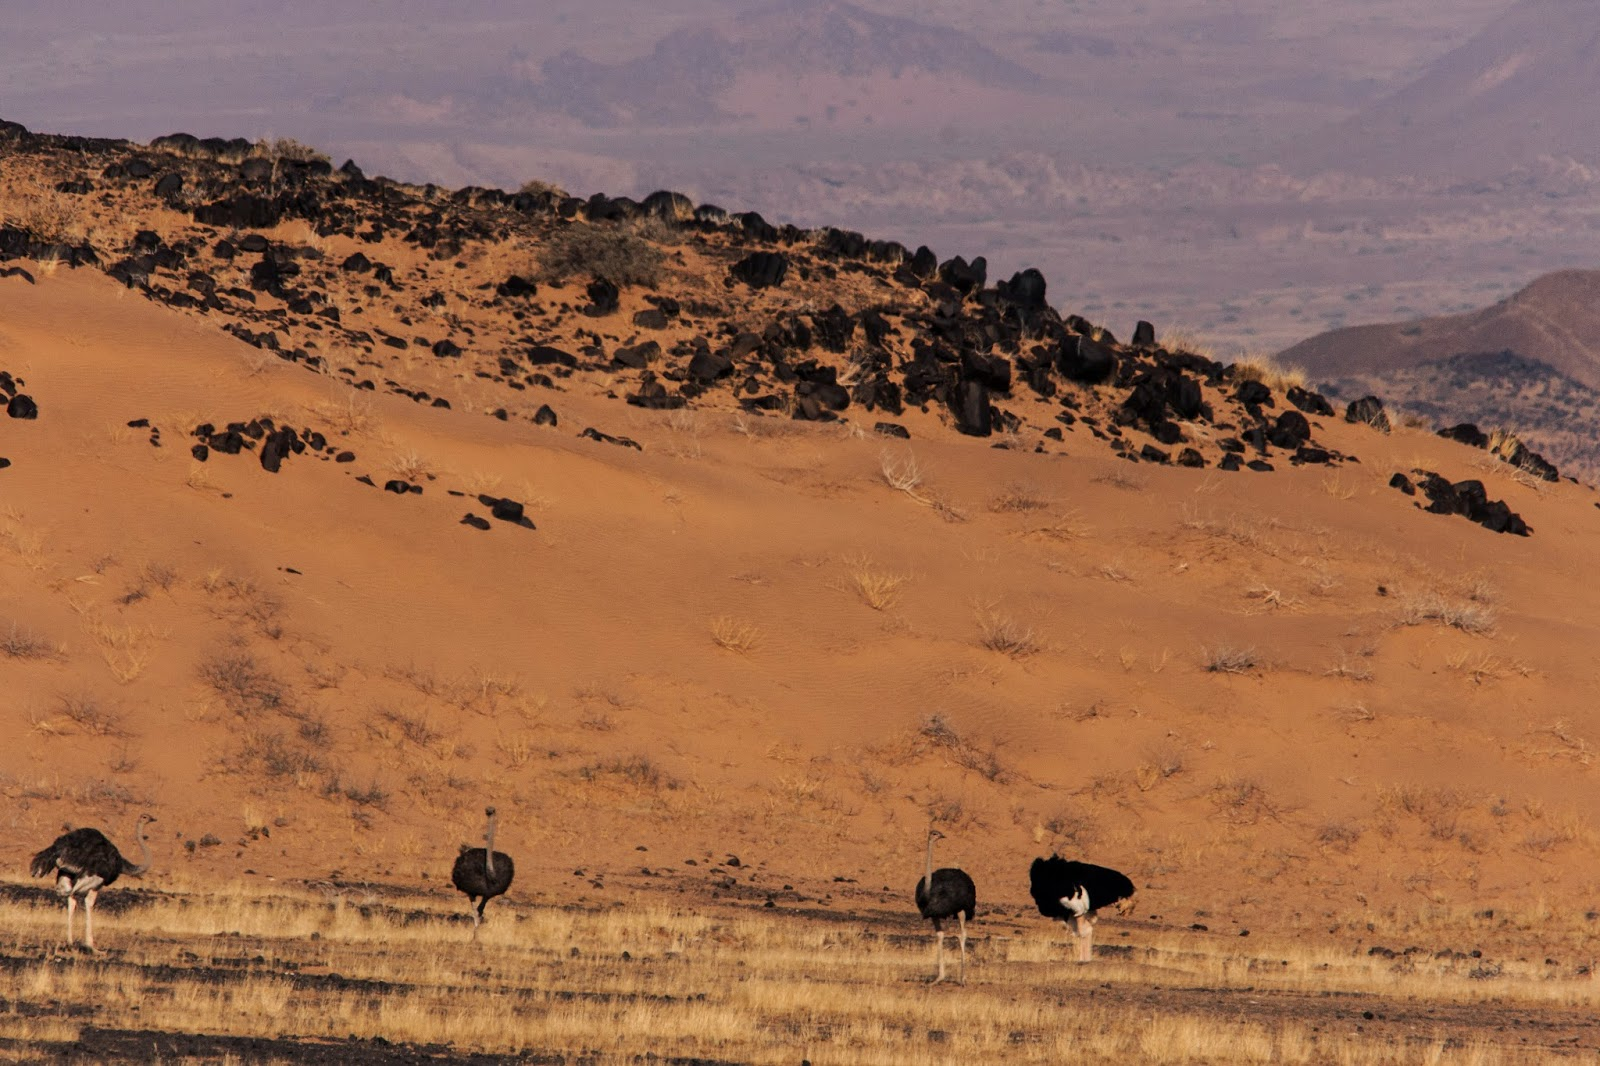 Ostriches damaraland namibia safari